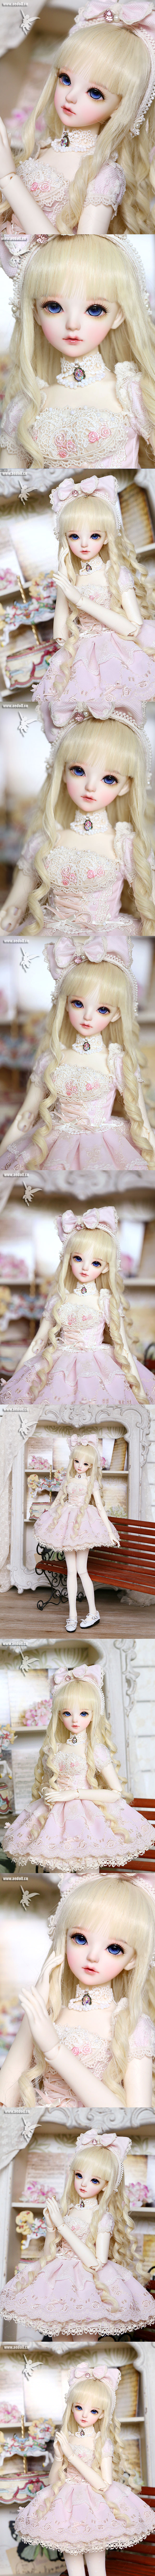 BJD Moira 58cm Girl Ball-jointed Doll